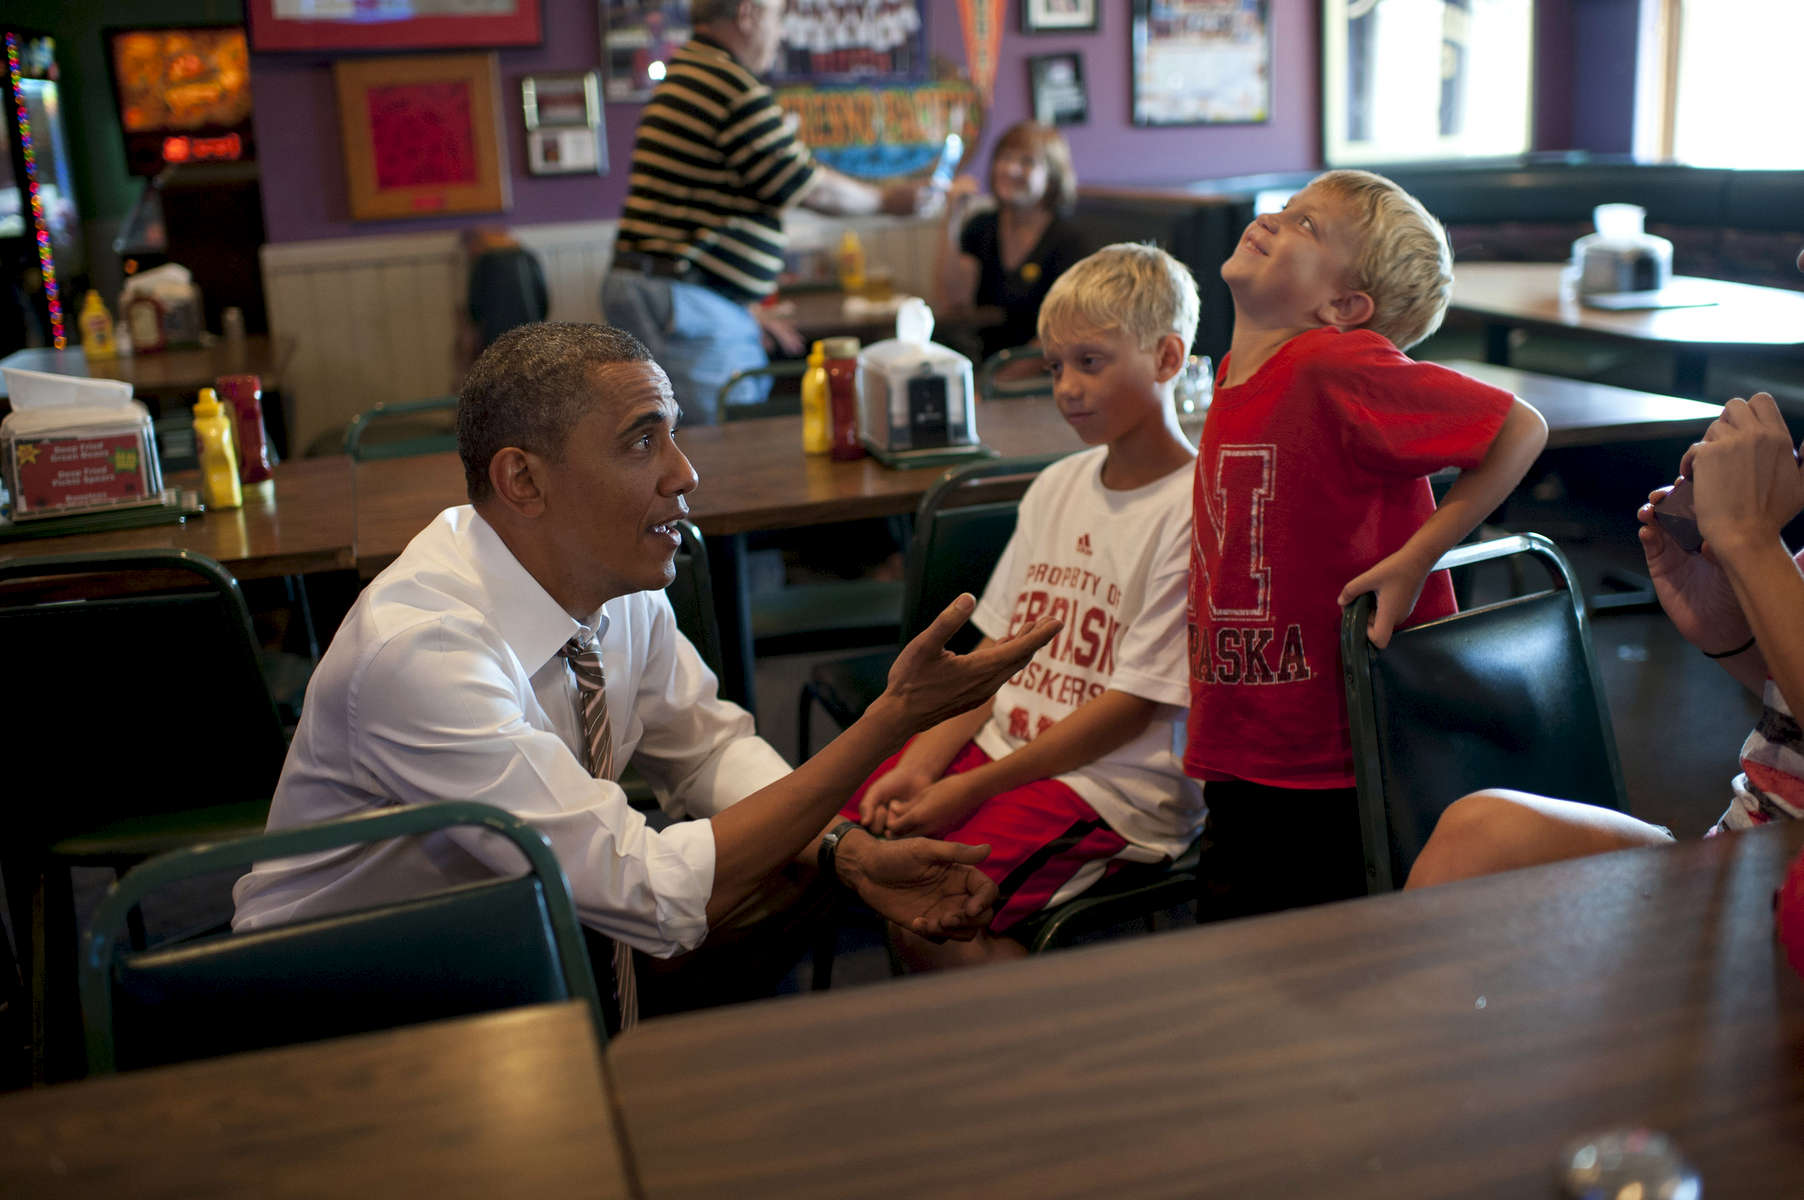 September 1, 2012 - Sioux City, IA: President Barack Obama teases two boys at Bob Roe's Point After sports bar in Sioux City, IA.  (Scout Tufankjian for Obama for America/Polaris)